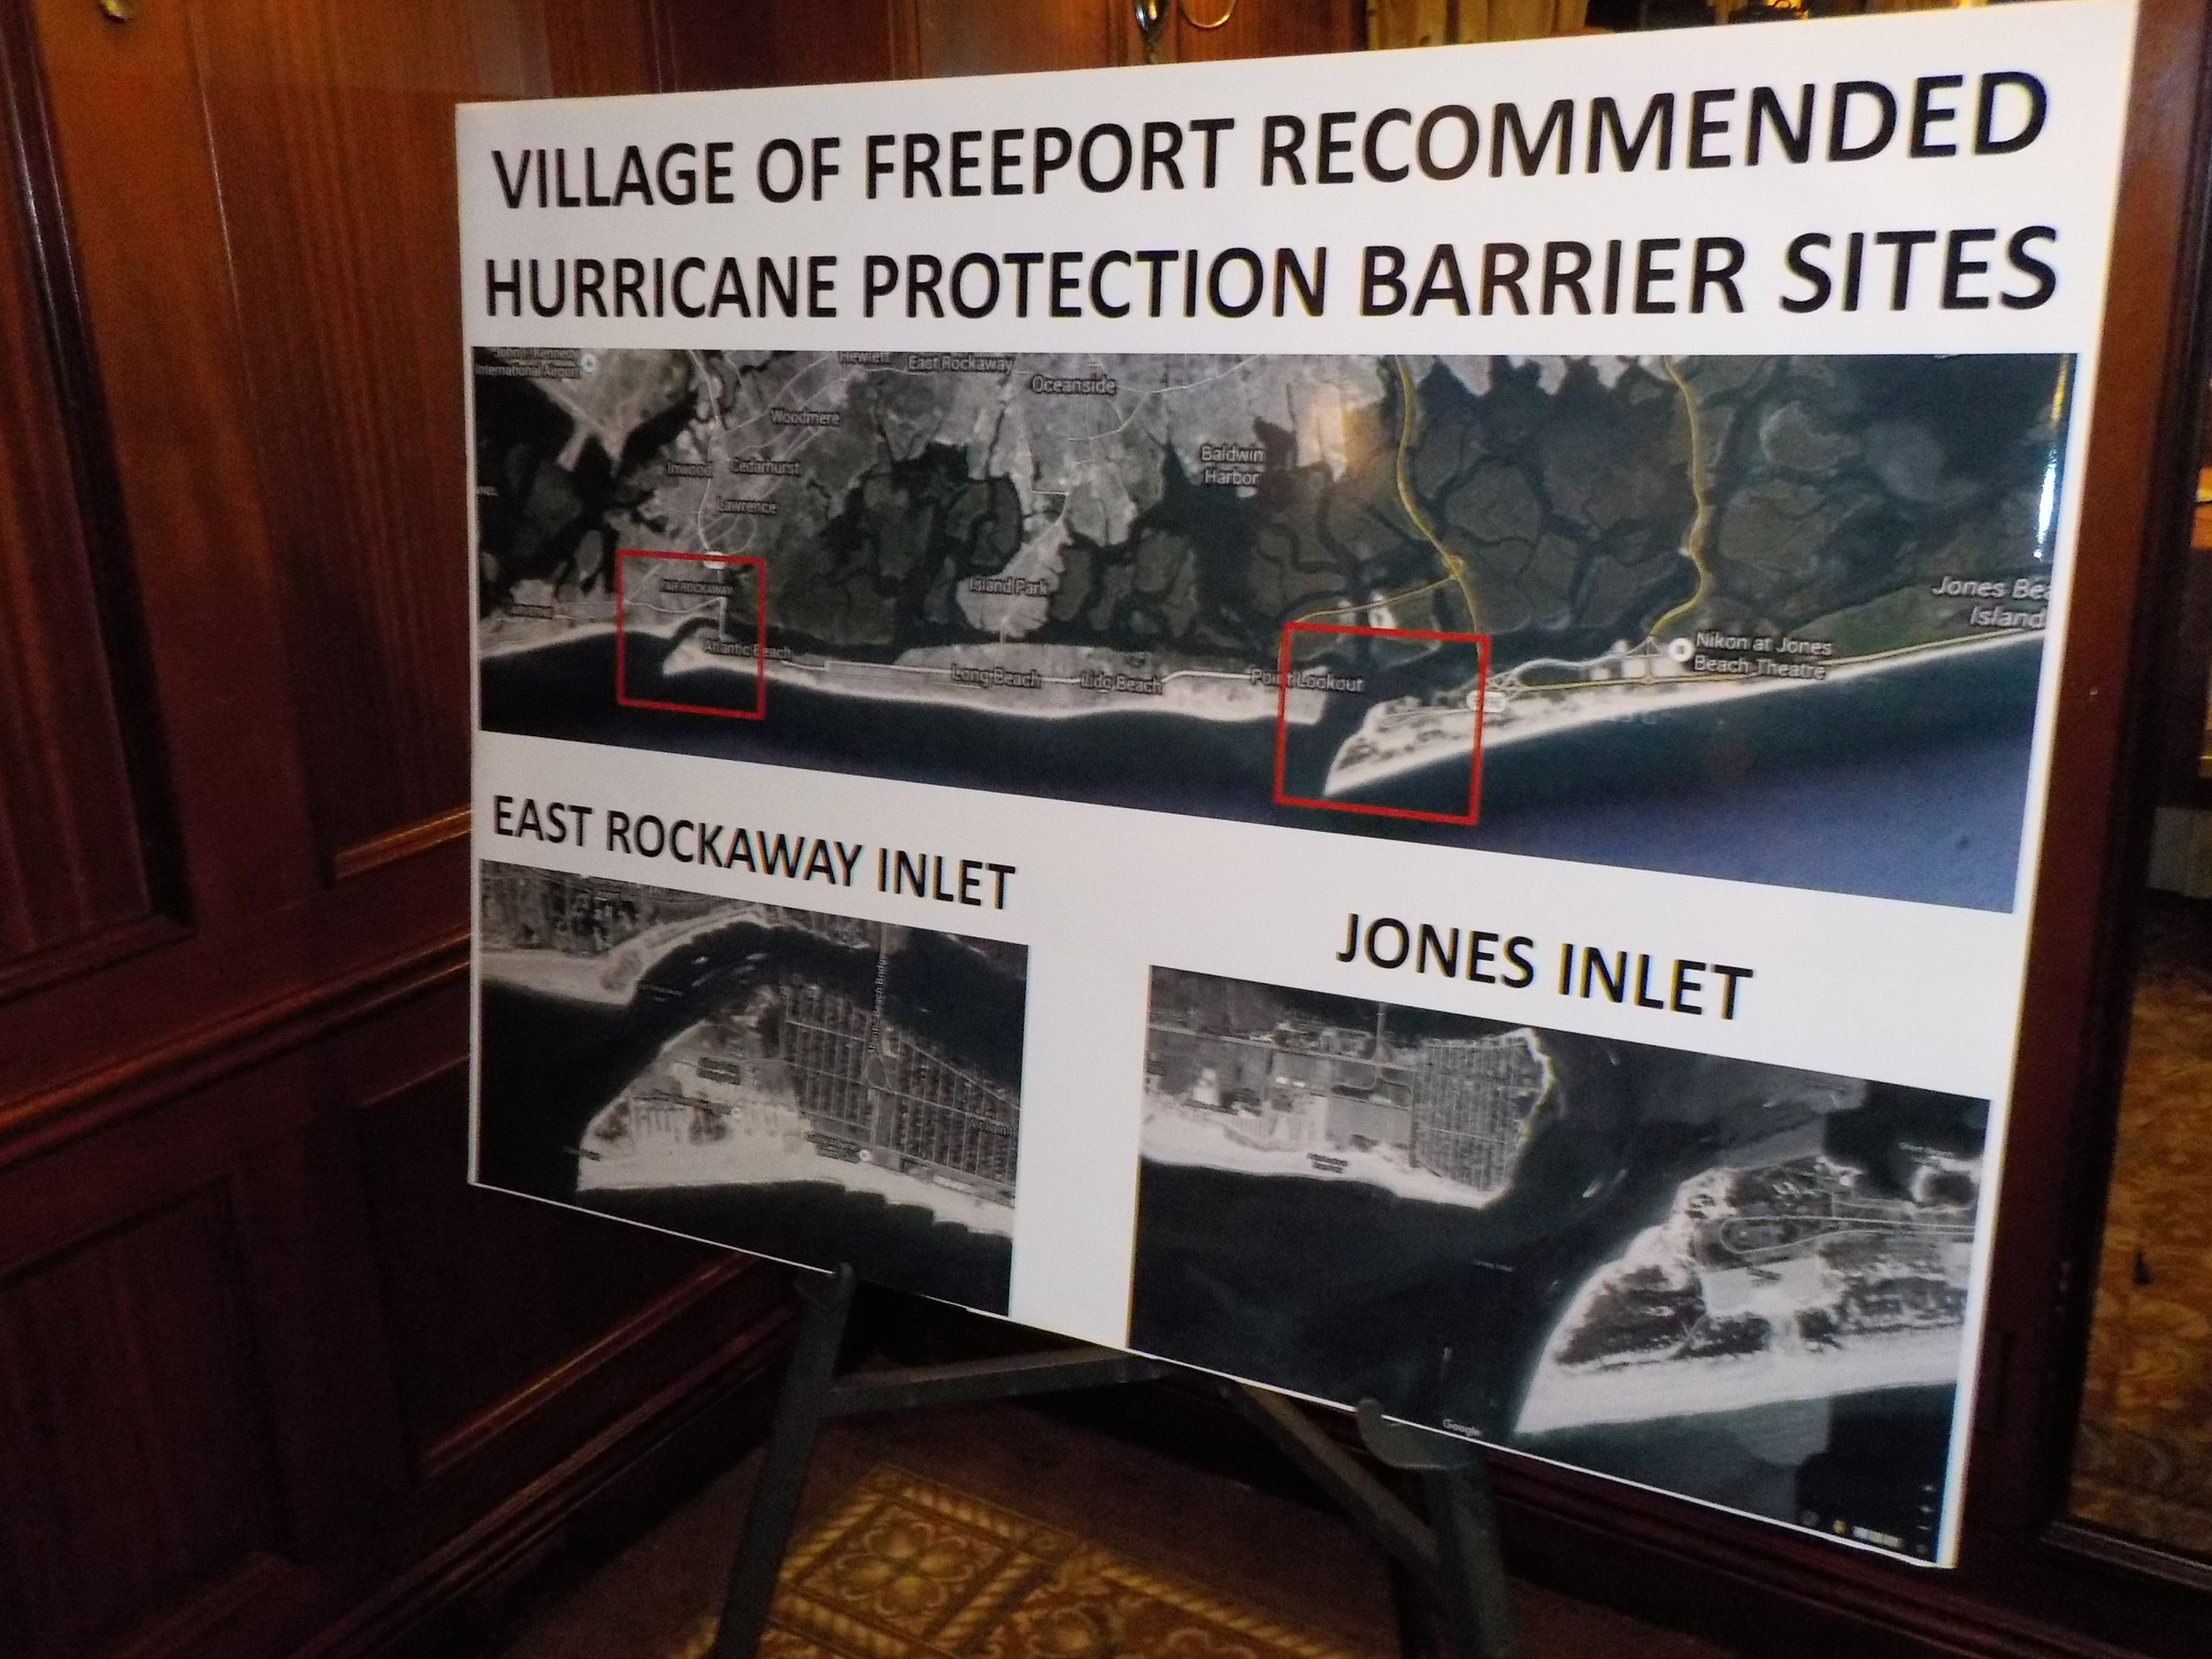 A rendering of the East Rockaway and Jones inlets, where the hurricane protection barriers would be built.